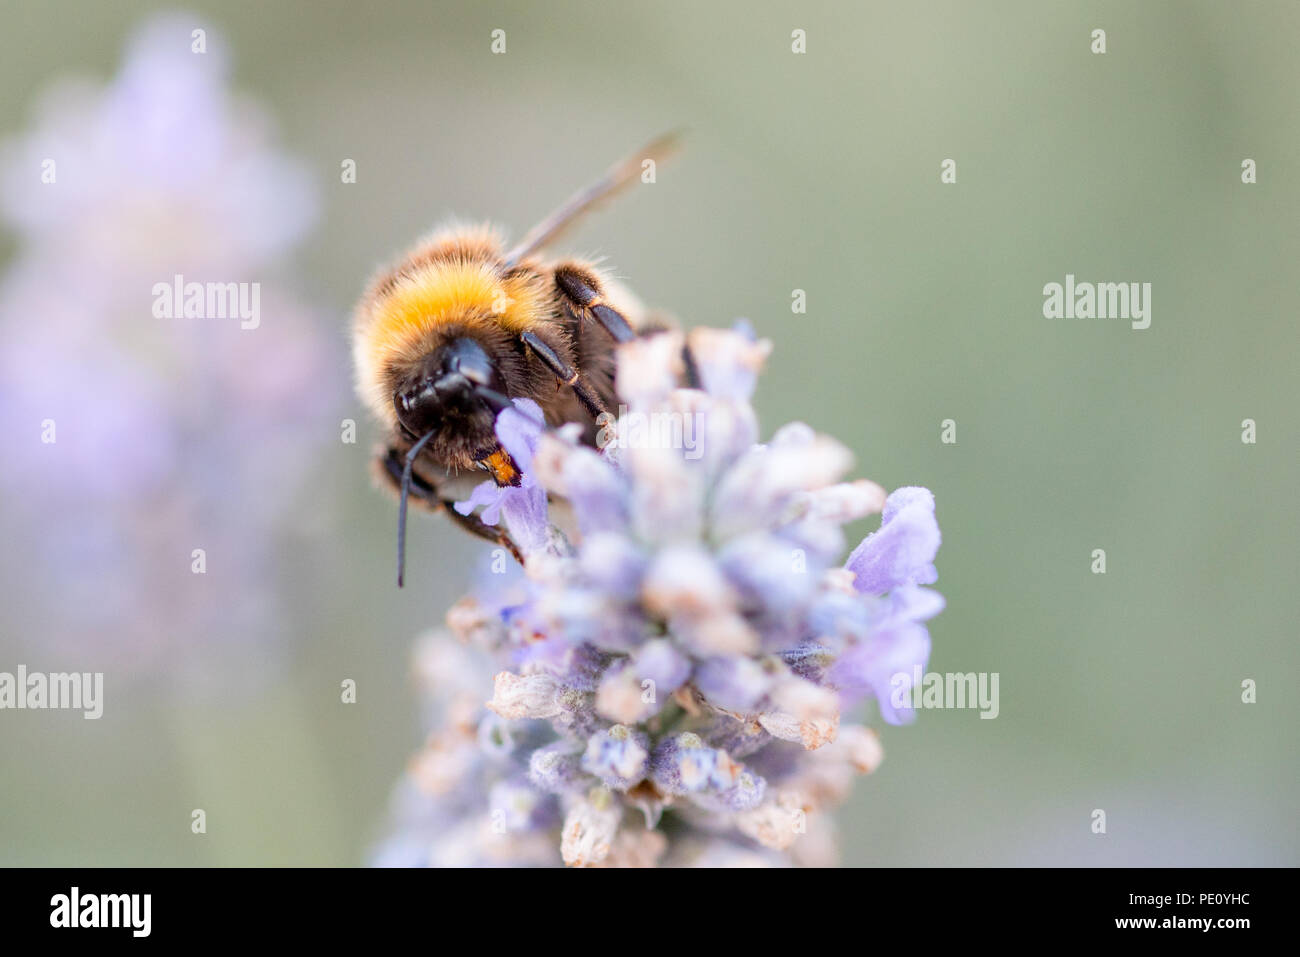 Bees Pollinating Lavender Stock Photo